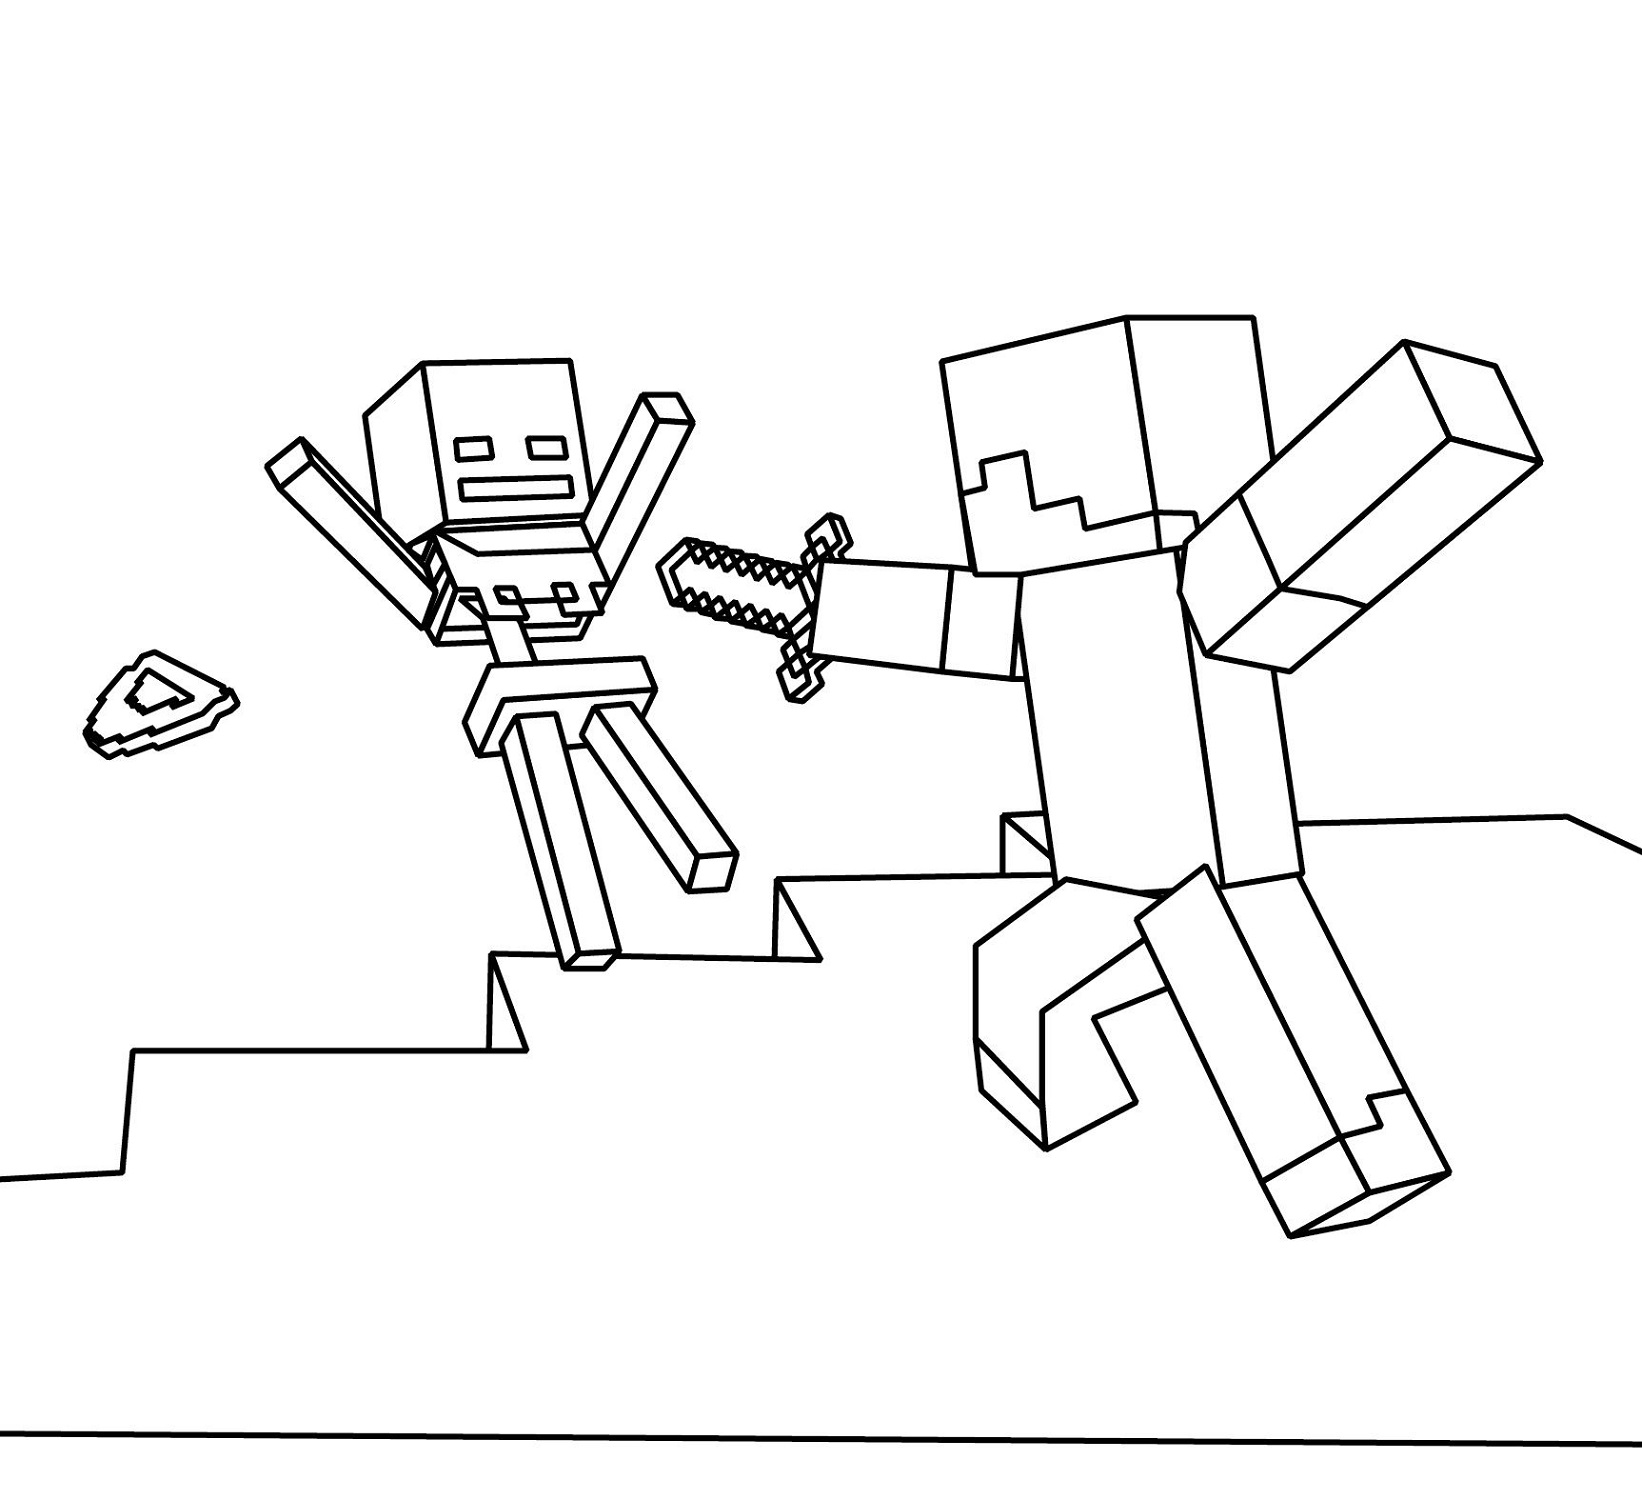 Minecraft Printable Coloring Pages For Boys Printable Shelter Minecraft Coloring Pages Coloring Pages For Kids Easter Coloring Pages